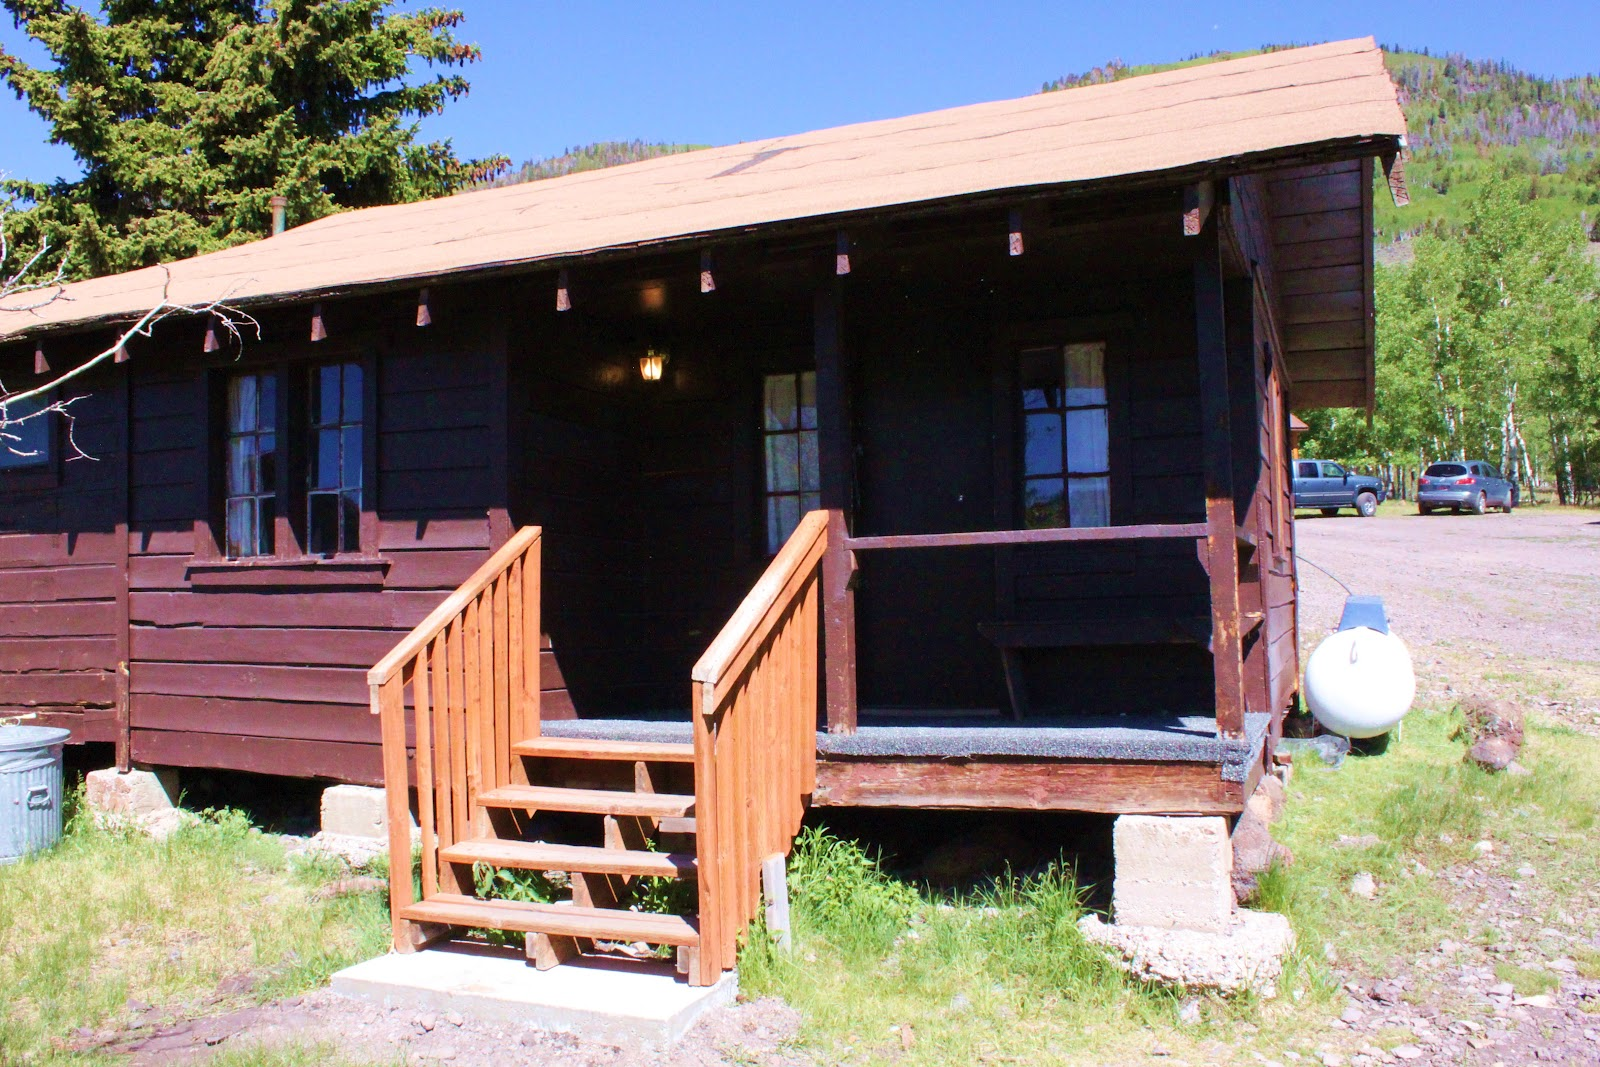 Rental Cabins At Fish Lake Utah Rustic 6 Person Camping